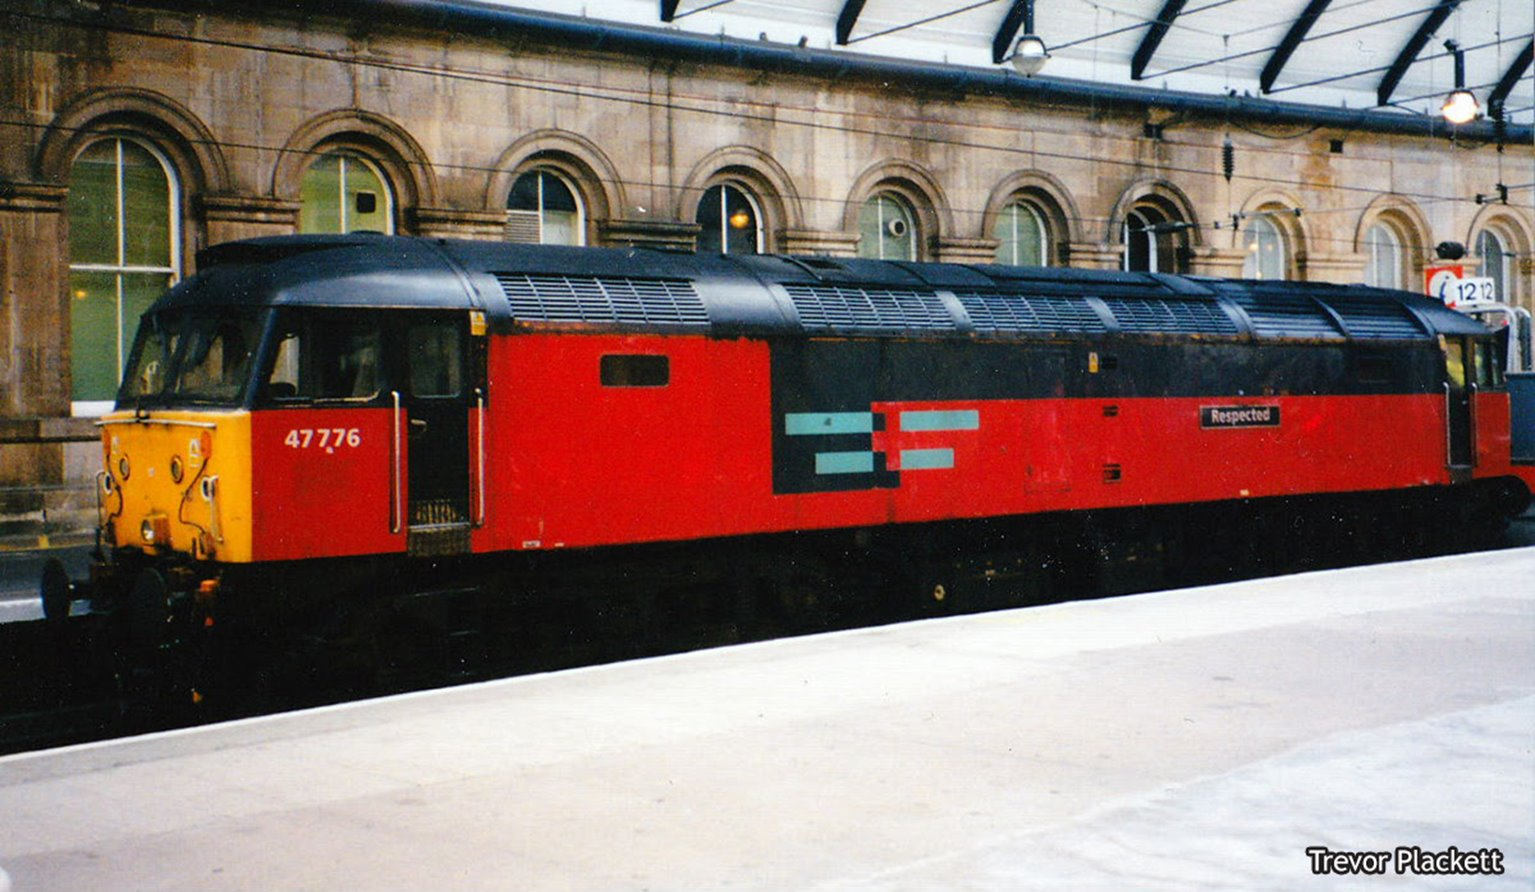 Class 47 578 'Respected' Rail Express Systems